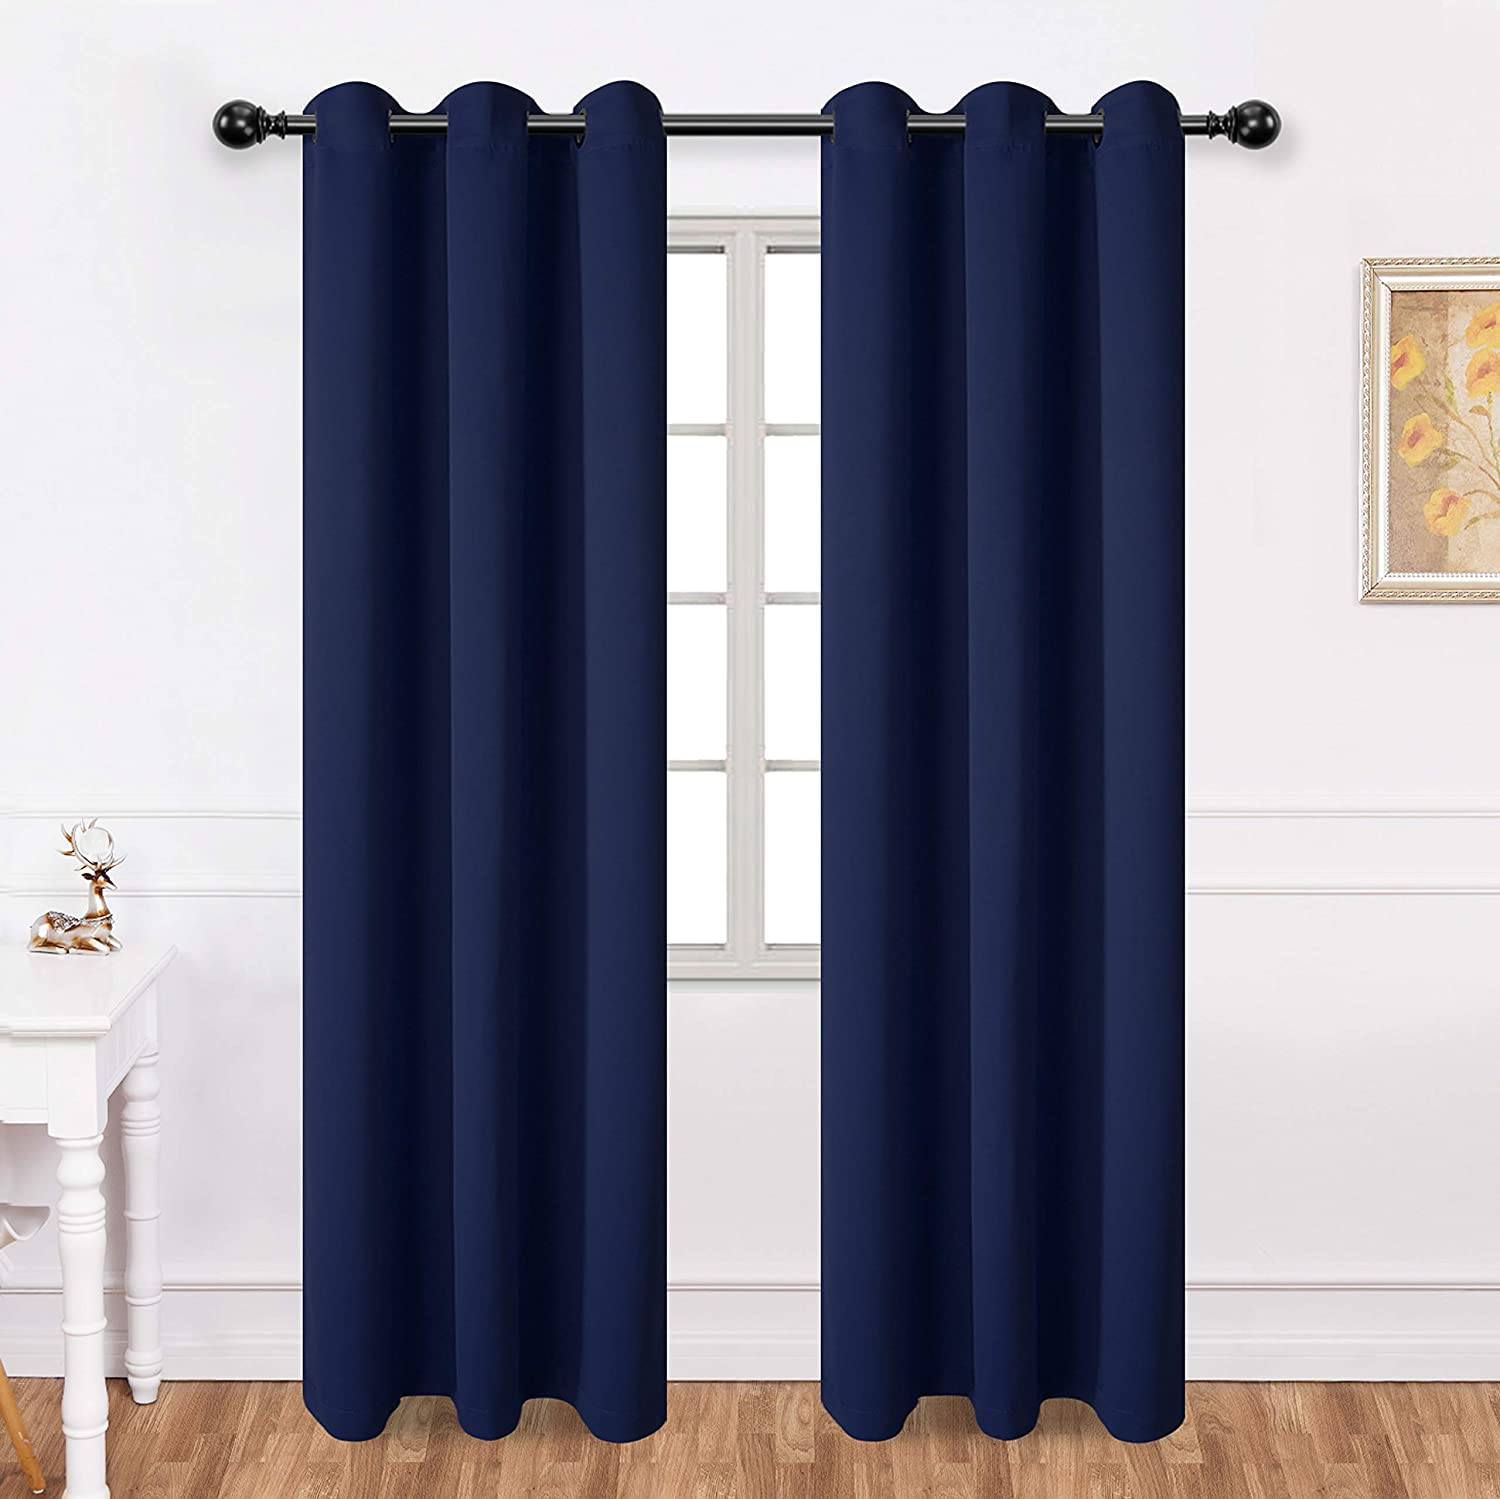 Texlab Blackout Curtains for Bedroom 42 x 84Inch - Grommet Thermal Insulated Summer Heat/Winter Cold, Light Blocking Window Curtain Panels for Living Room, Set of 2 Pieces, Navy Blue